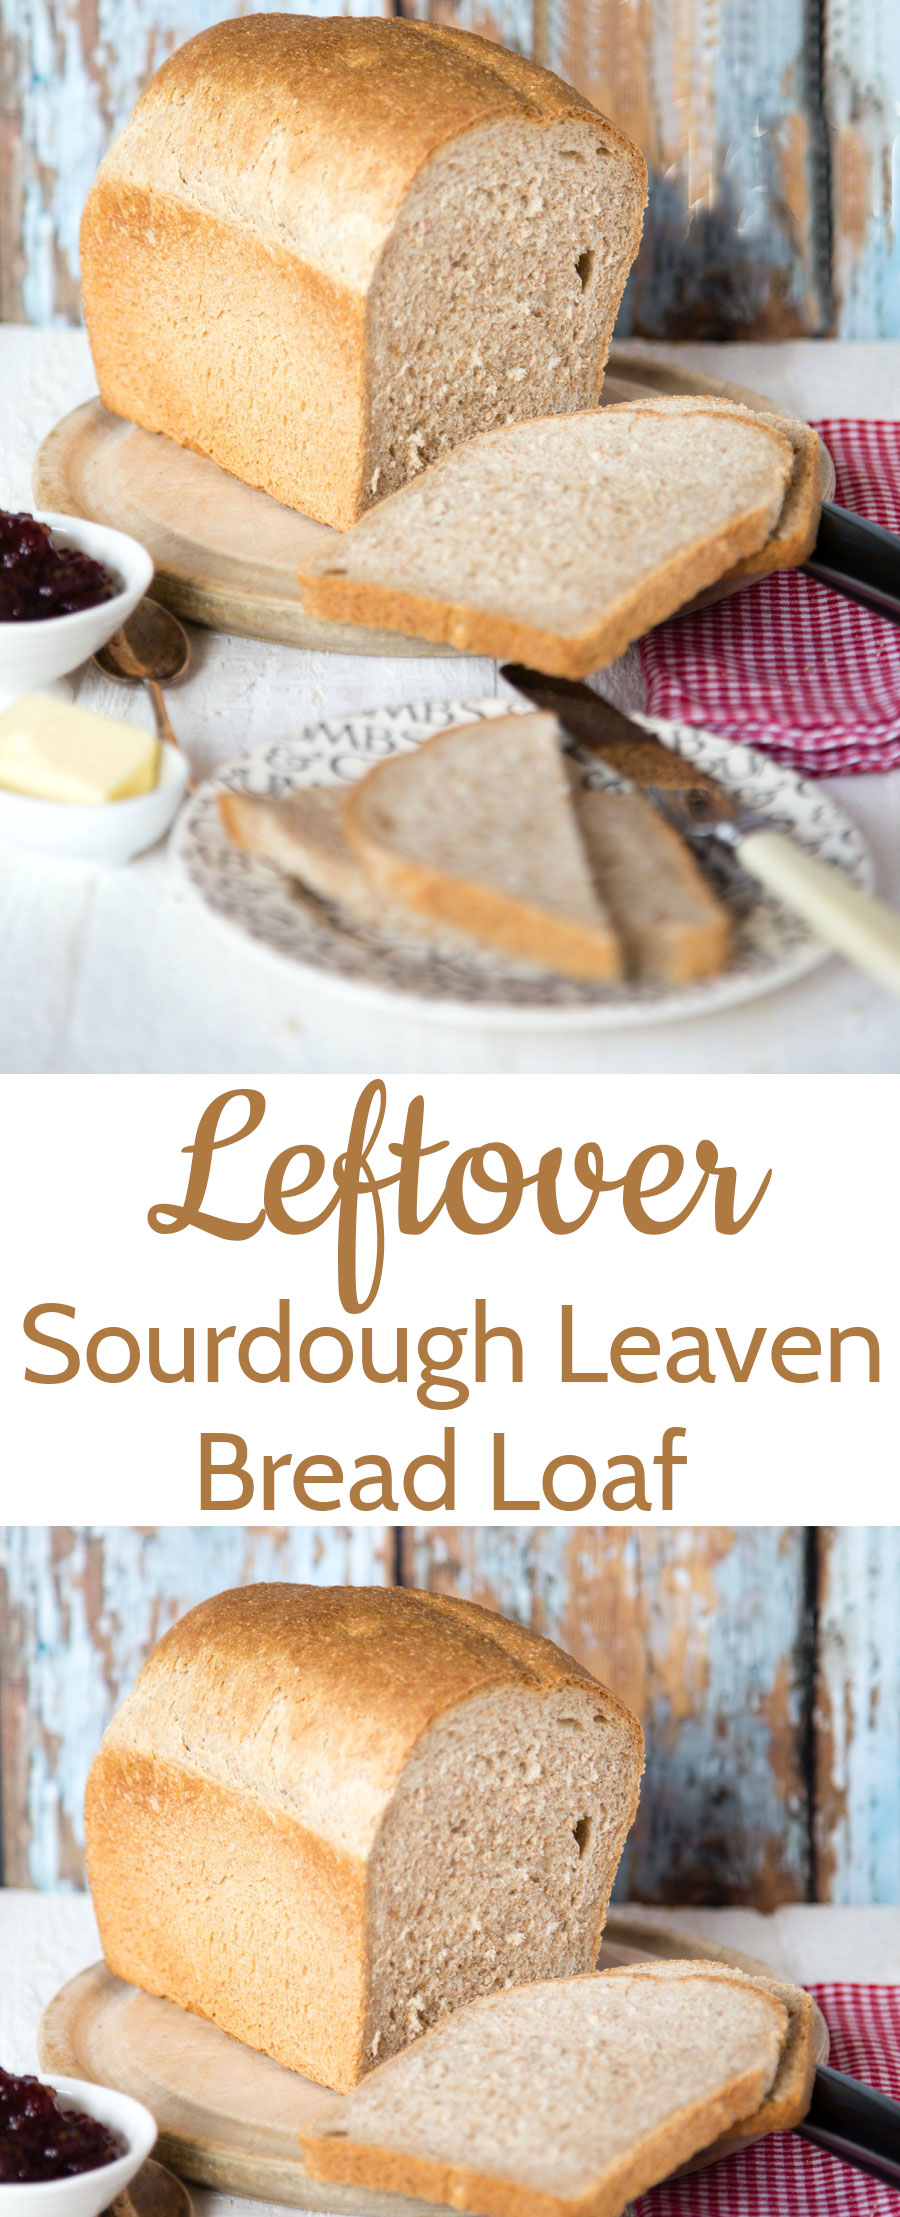 A yeasted loaf that uses up leftover sourdough leaven that otherwise is wasted.